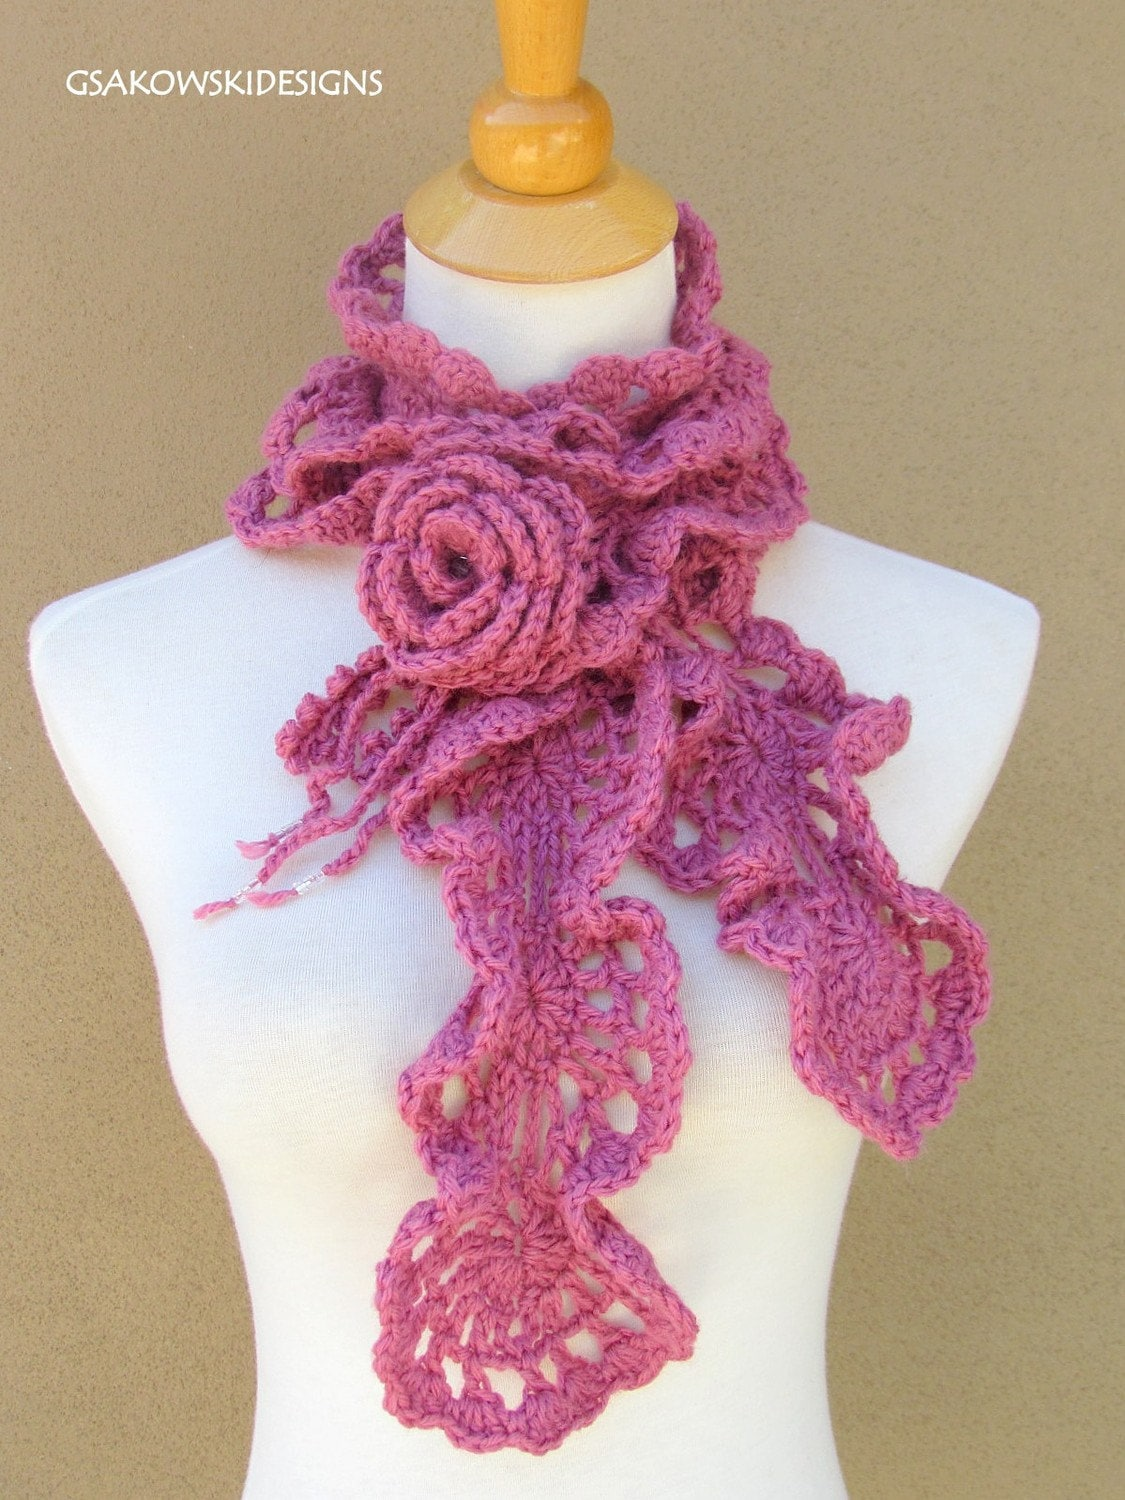 PATTERNS FOR CROCHETED SCARVES  Crochet Club Free Patterns Crocheted Scarves Children